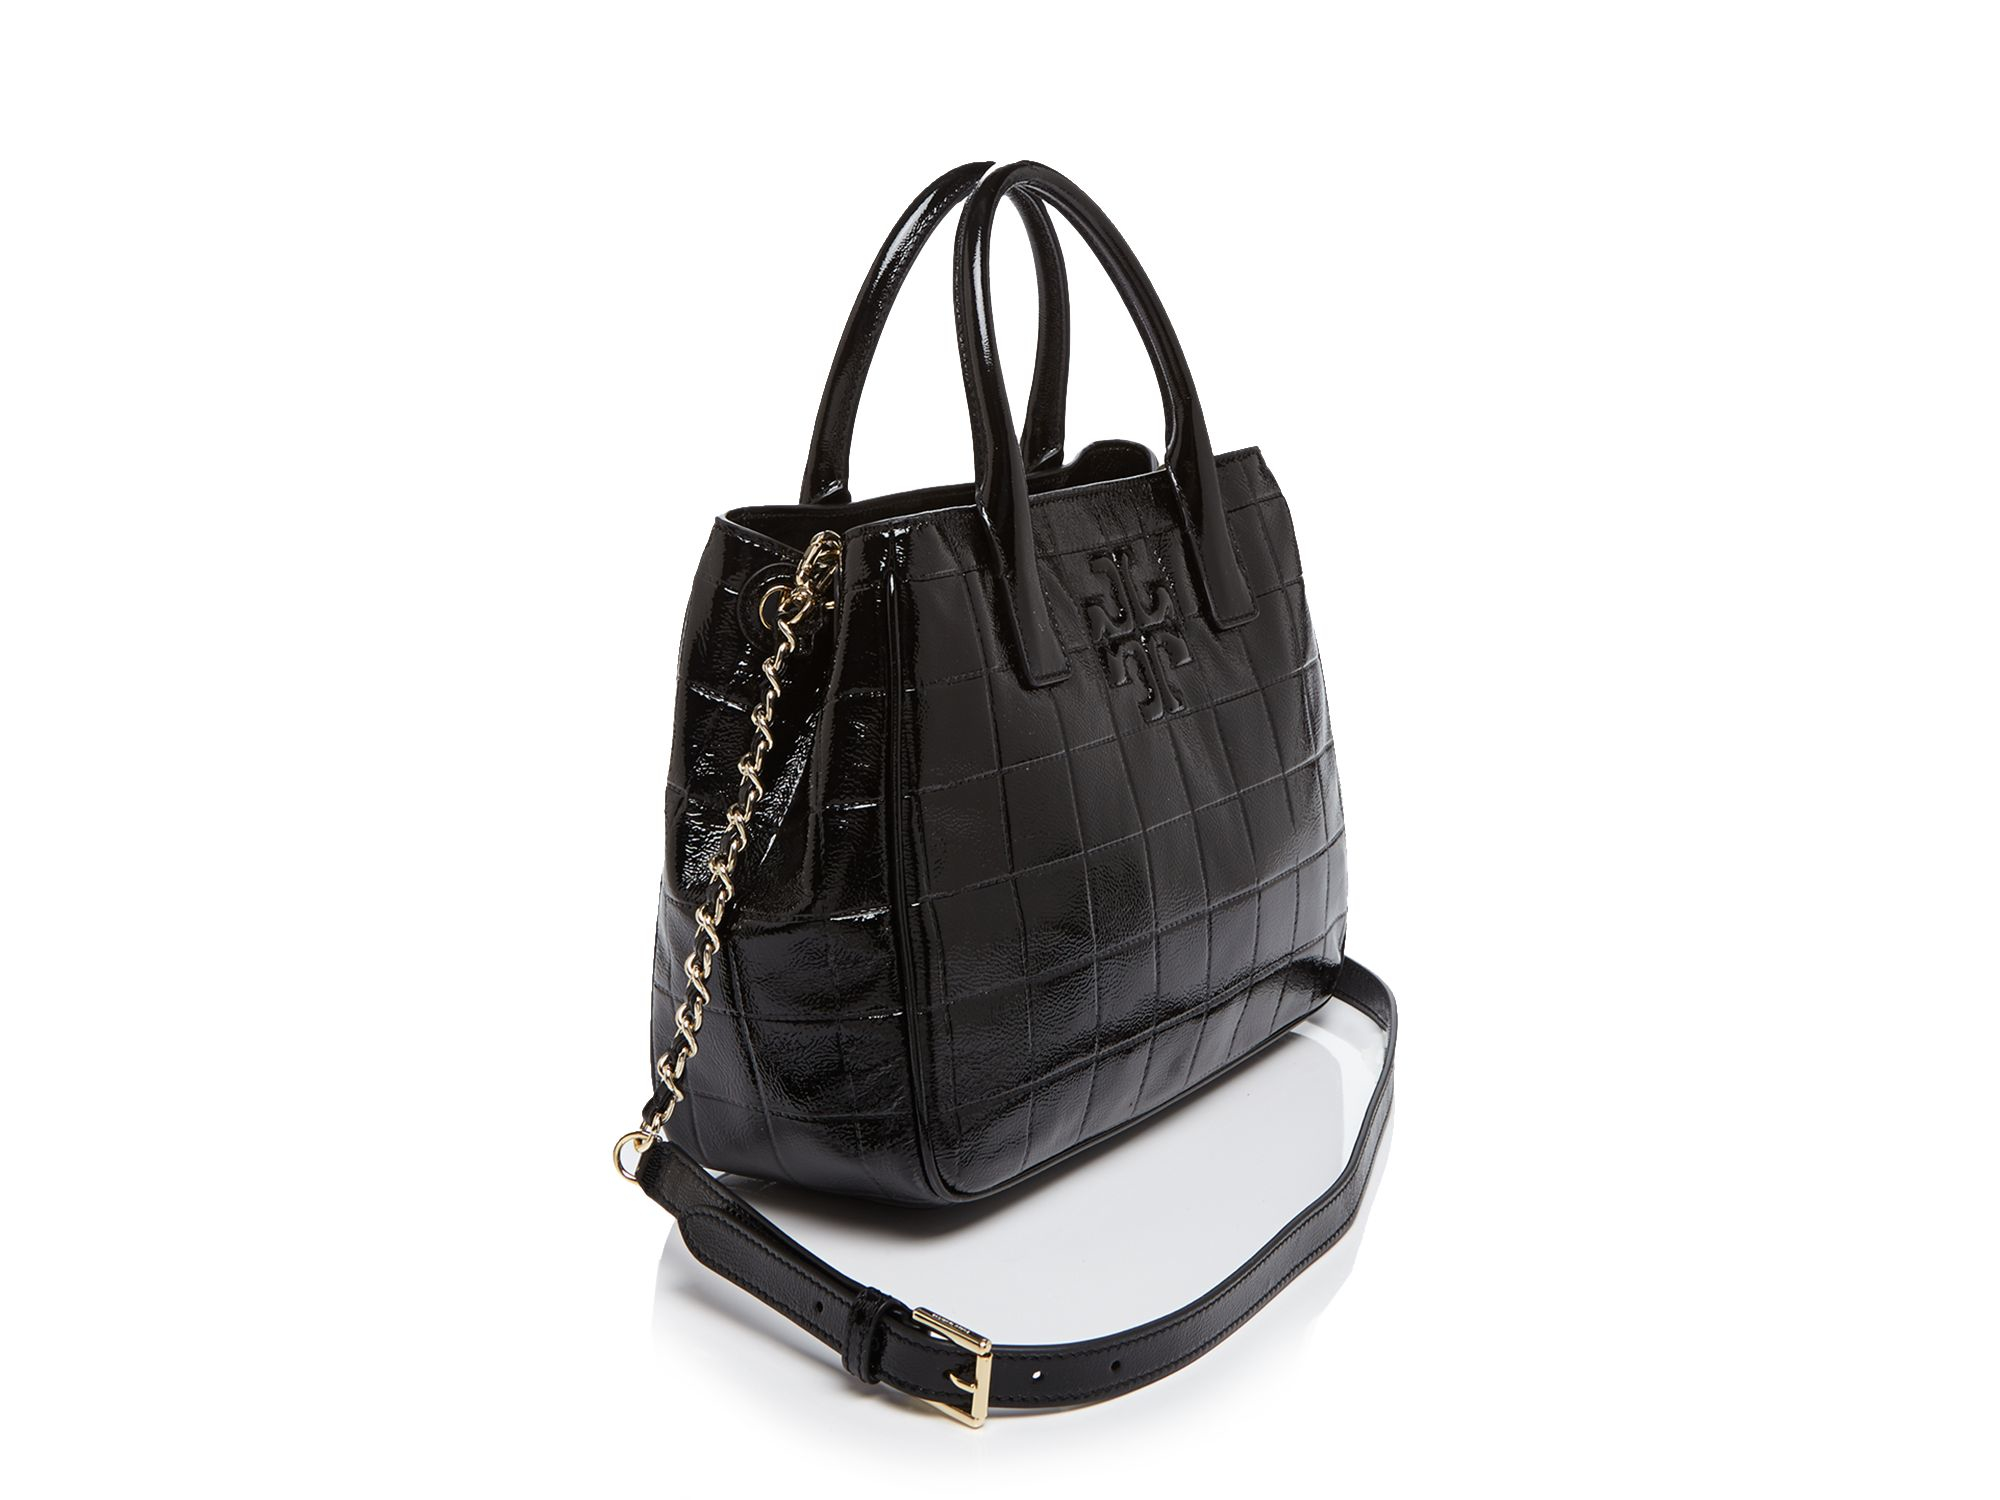 Tory burch Marion Quilted Patent Tote in Black | Lyst : tory burch quilted tote - Adamdwight.com